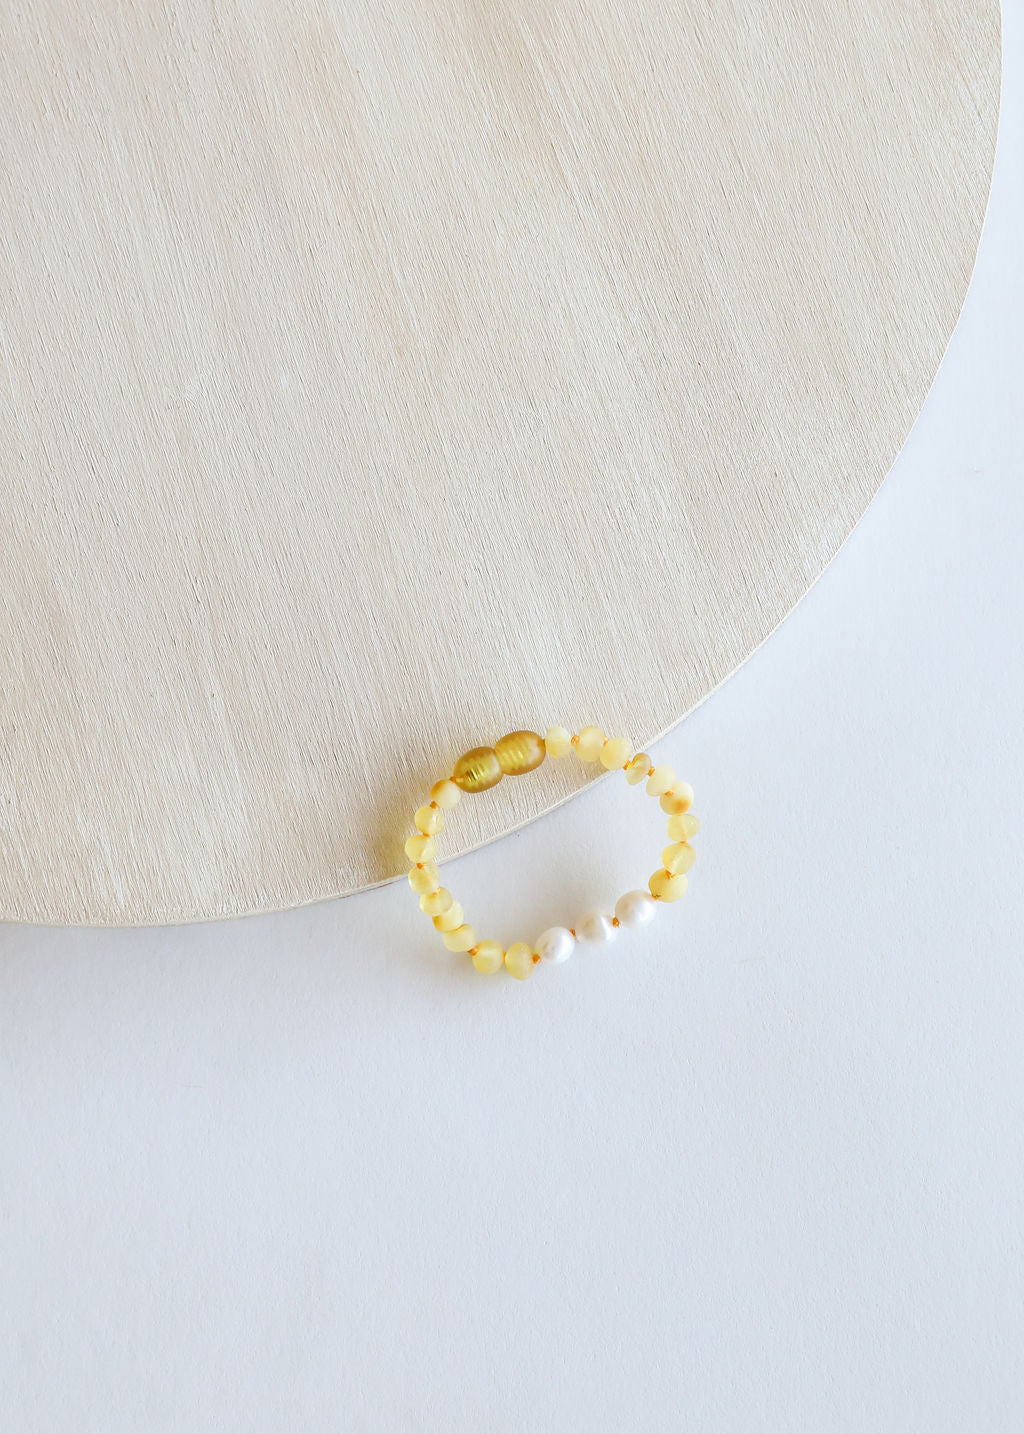 Raw Honey Amber + Pearls || Kids